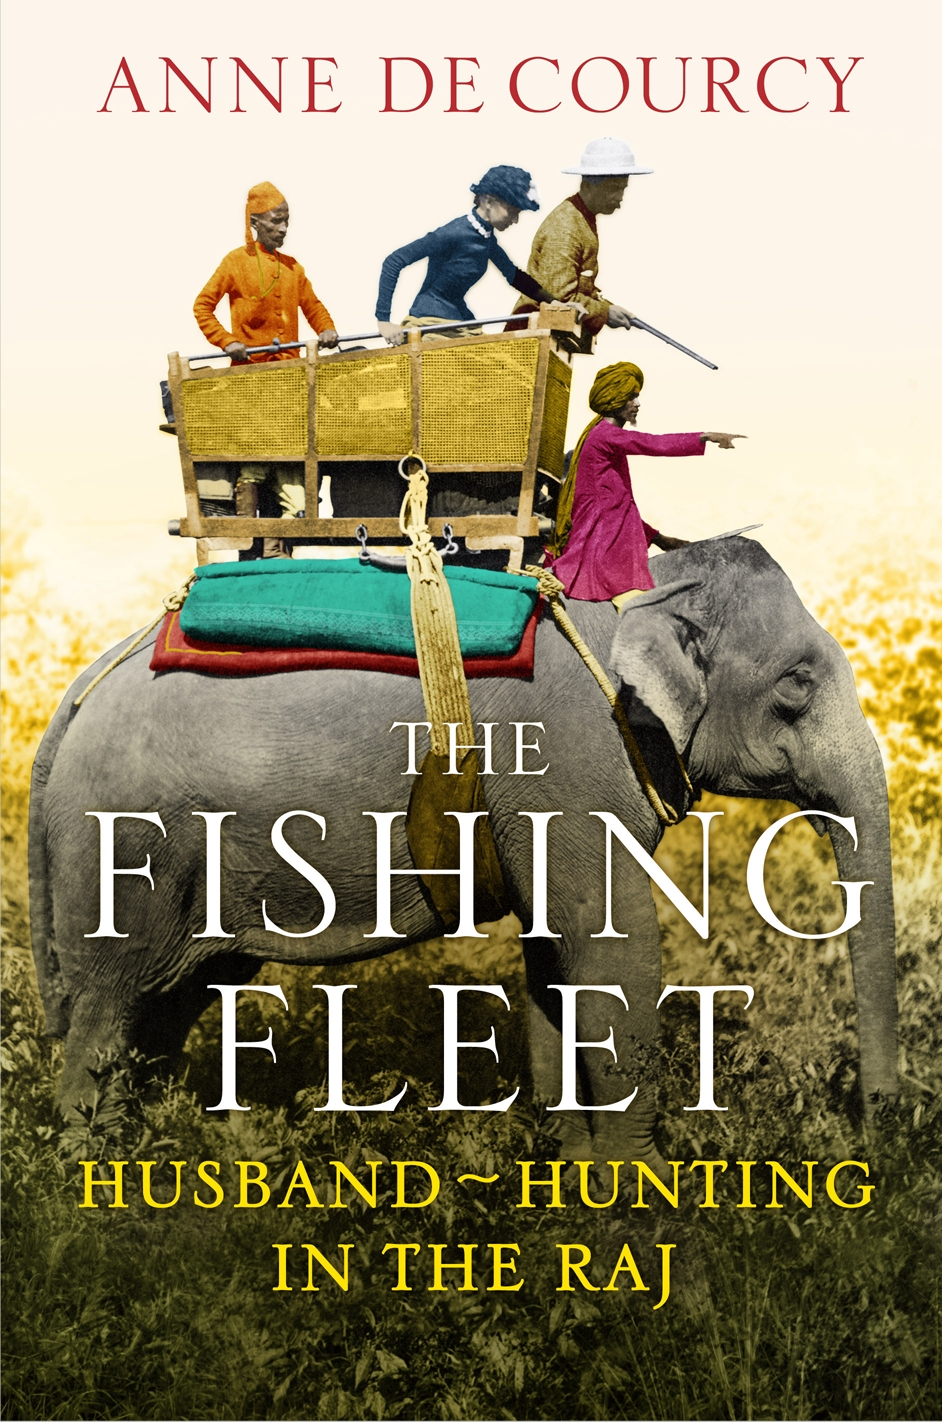 THE FISHING FLEET: HUSBAND-HUNTING IN THE RAJ Historical, 336 pages Weidenfeld & Nicolson - July 2012 7 weeks in the top UK bestseller lists. Unpublished memoirs, letters and diaries rescued from attics help this sparkling narrative bring a forgotten era vividly to life.